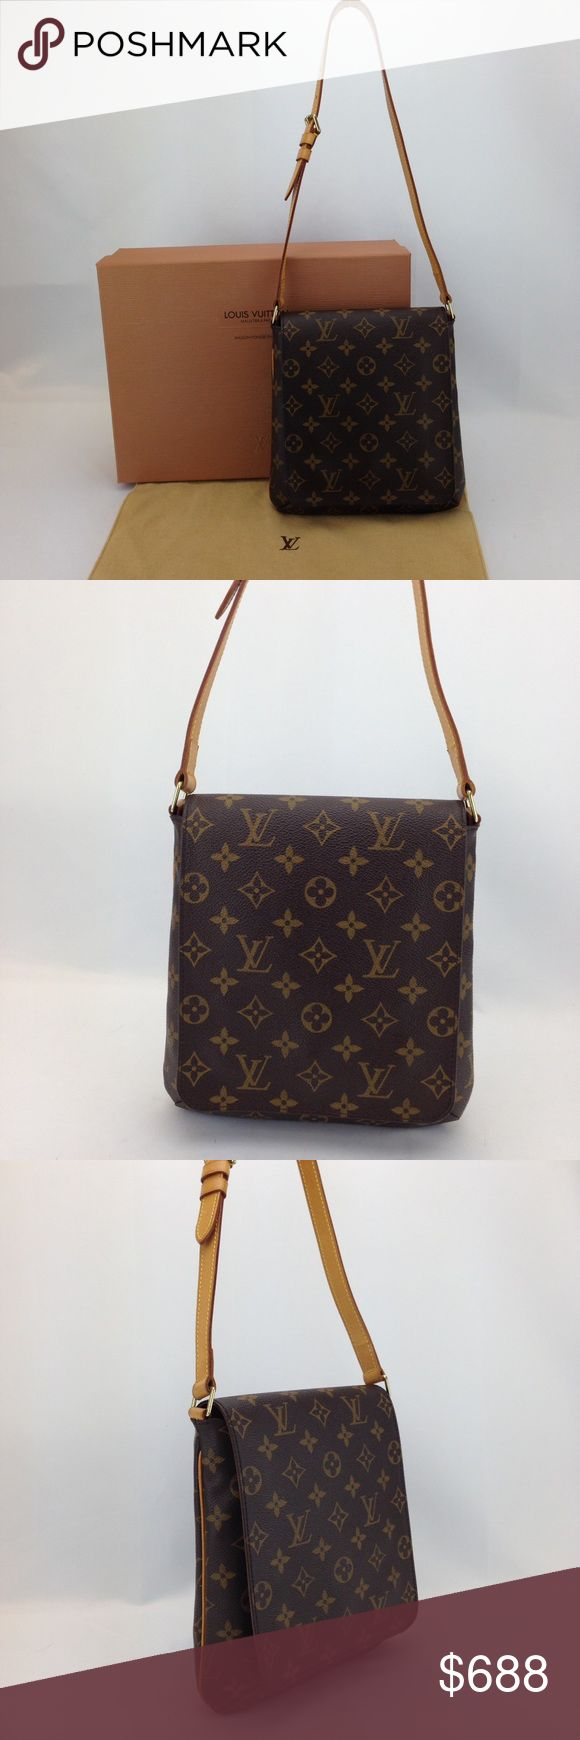 "Louis Vuitton Monogram Musette PM Shoulder Bag Louis Vuitton Monogram Musette Salsa PM Shoulder Bag in great condition! 100% pre-owned authentic. Date code reads SD0979. Made in USA. No trade  Exterior features: - brown and tan monogram coated canvas with tonal stitching - tan vachetta leather trim with contrast yellow stitching - single flat adjustable belt shoulder strap with 8""-13"" drop  Interior features:  - solid rust Alcantara lining - single open flat patch pocket w/ leather trim…"